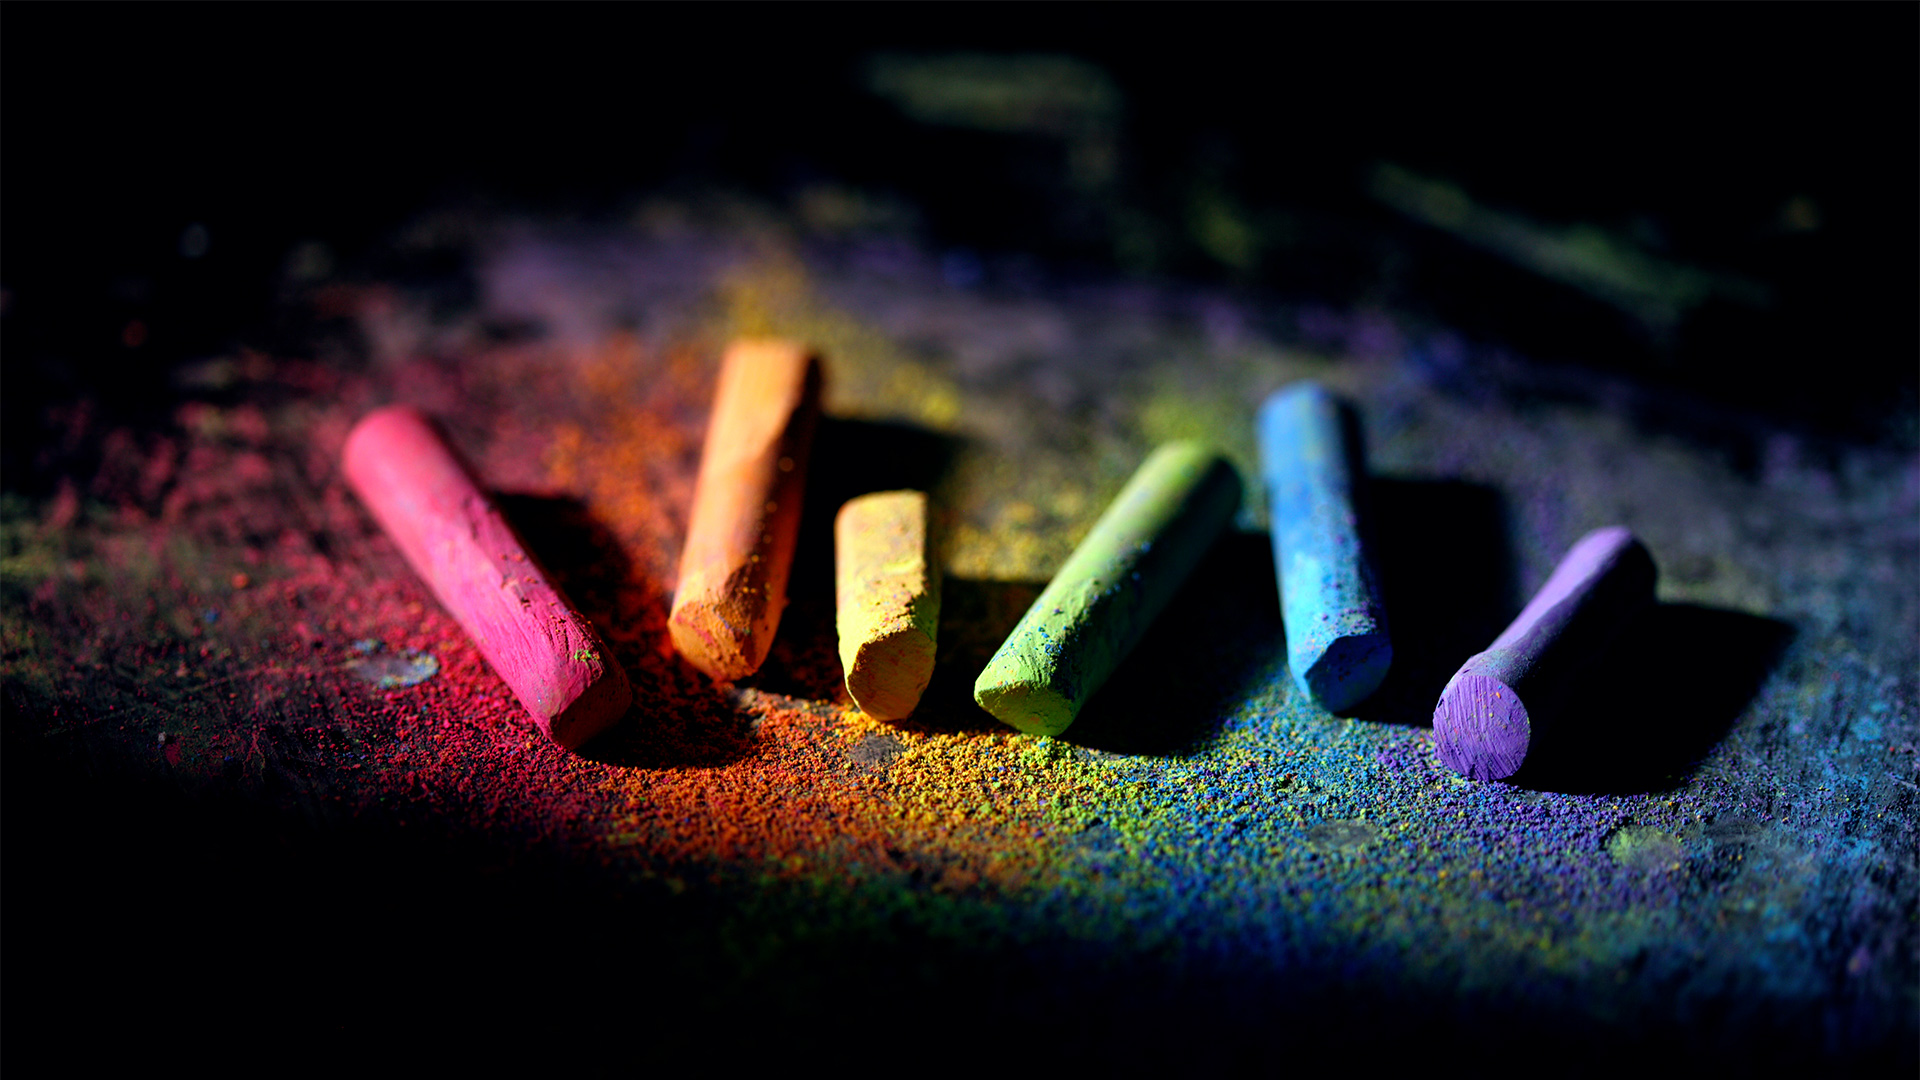 red, orange, yellow, green, blue, and violet chalk on black background.